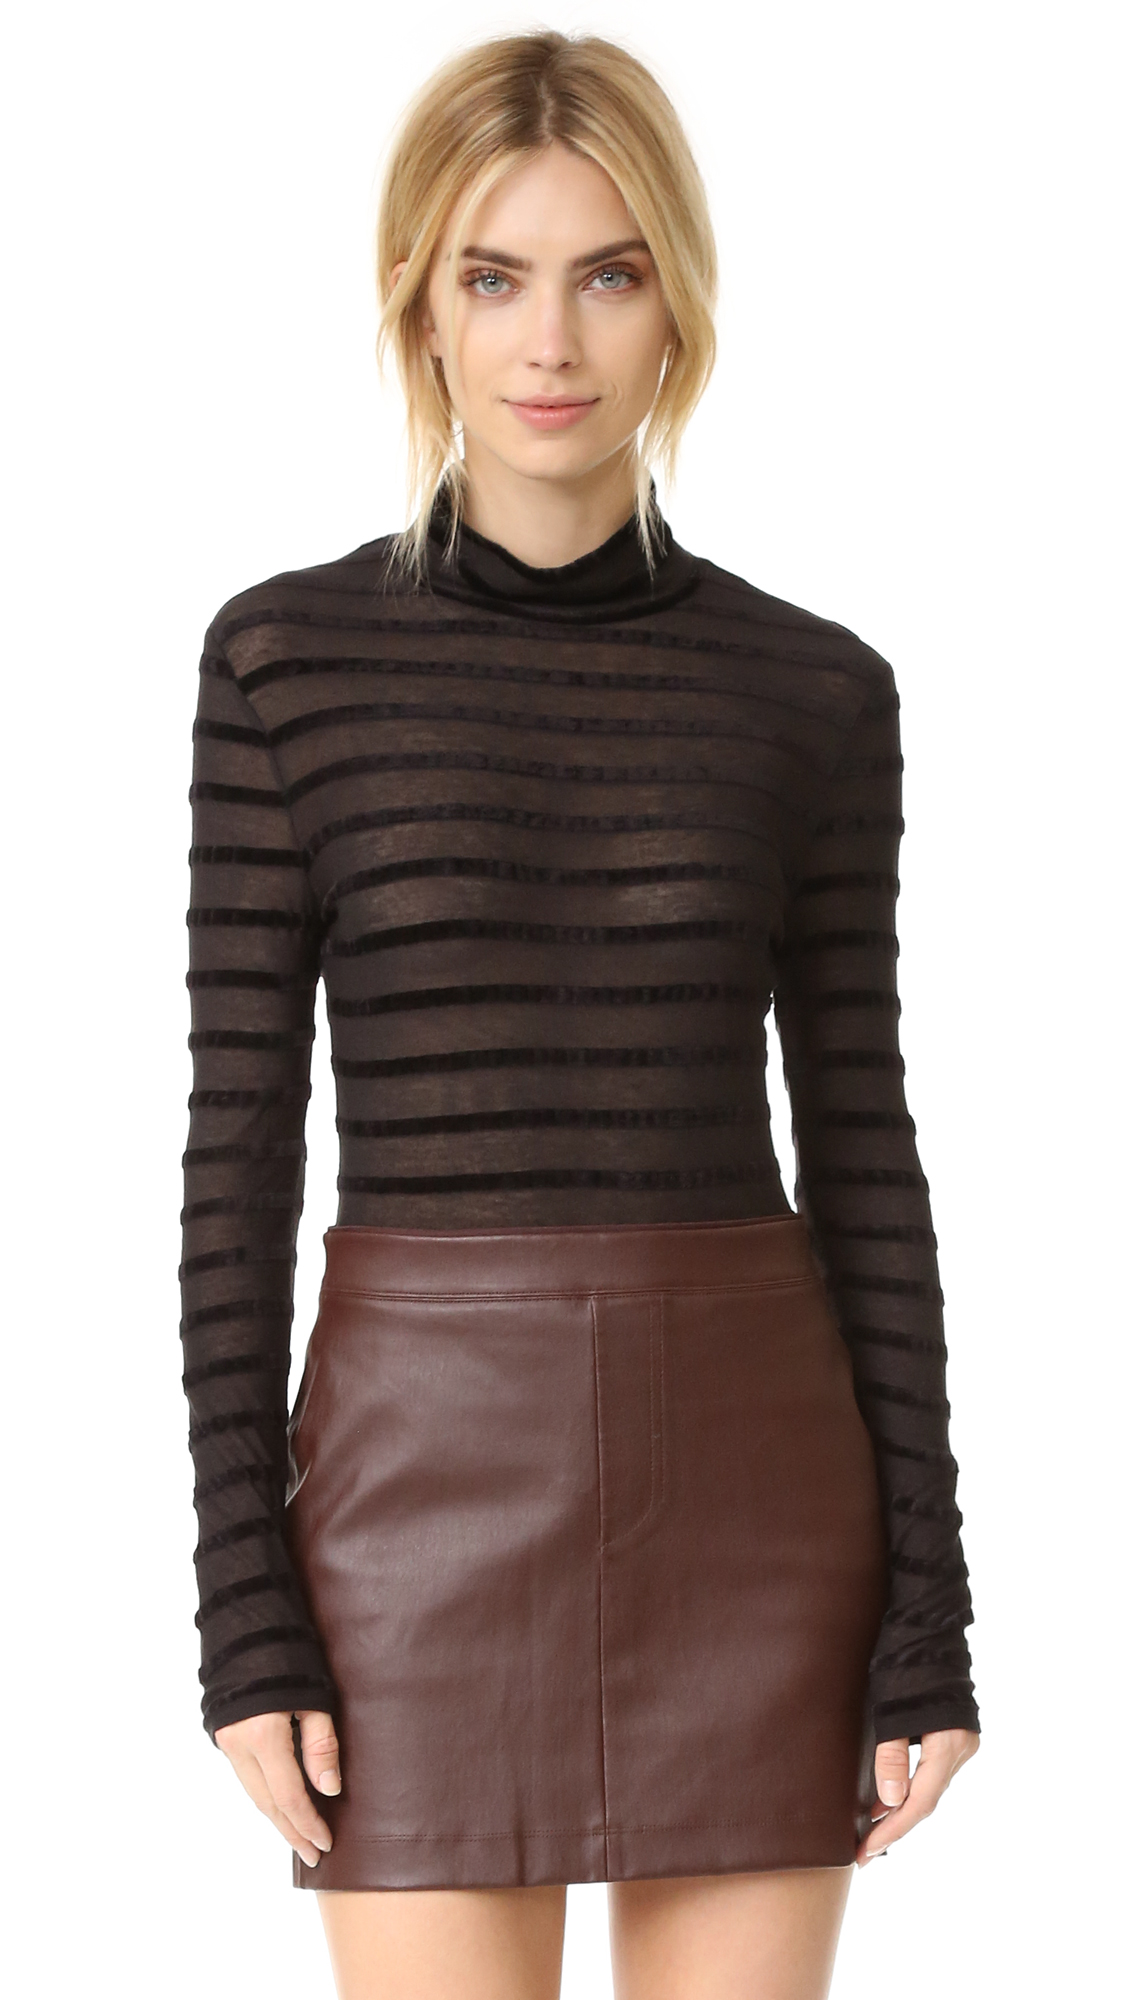 Bcbgmaxazria Turtleneck Sweater With Stripes - Black Combo